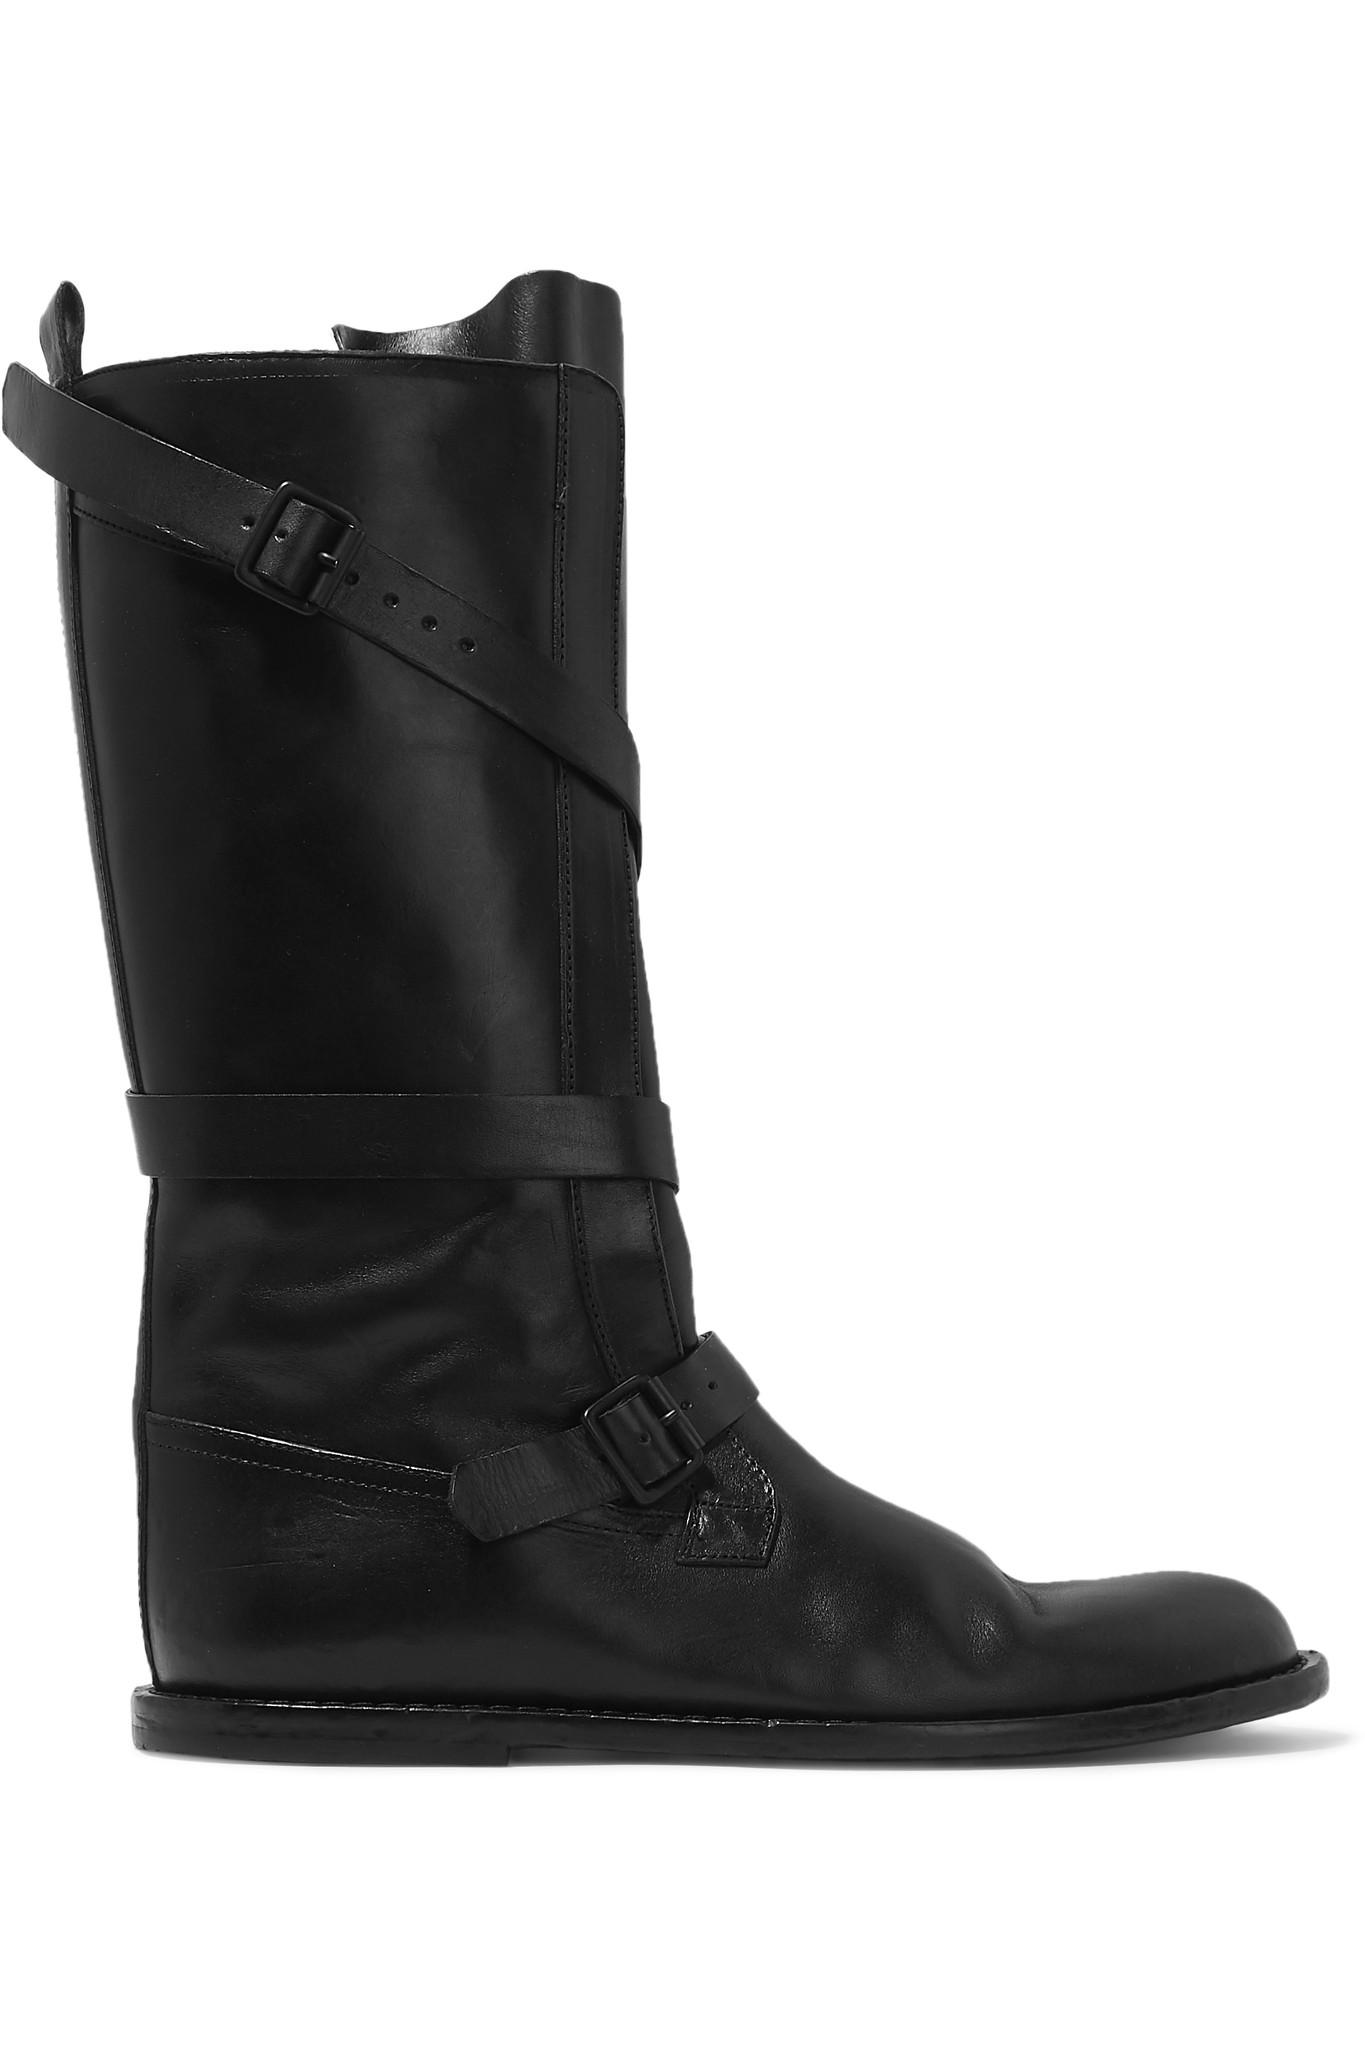 1ad65f6d408 Lyst - Ann Demeulemeester Buckled Leather Knee Boots in Black